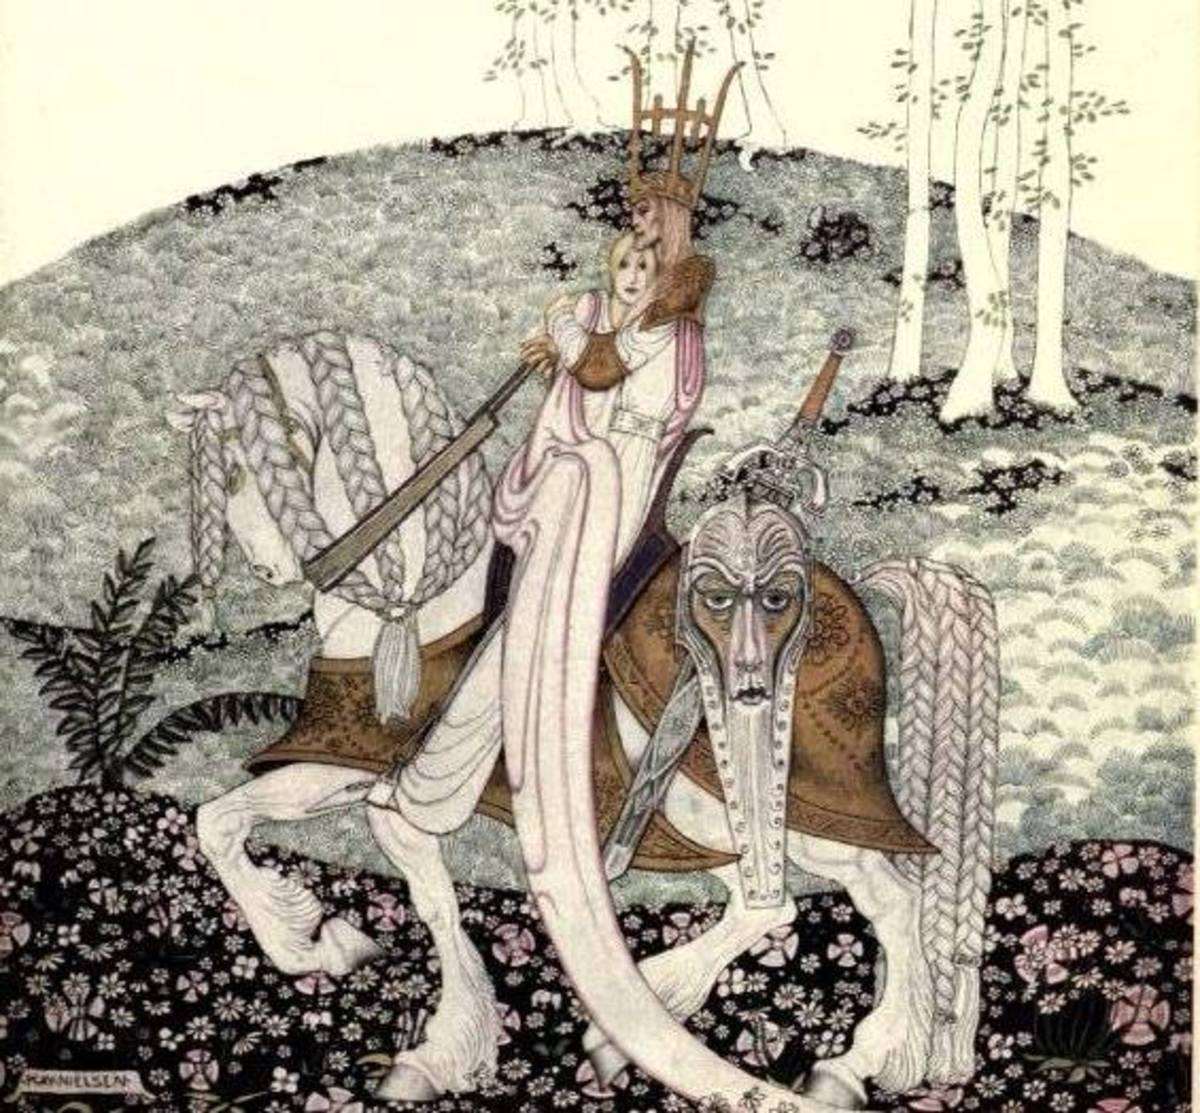 A fairy tale illustration by Kay Nielsen